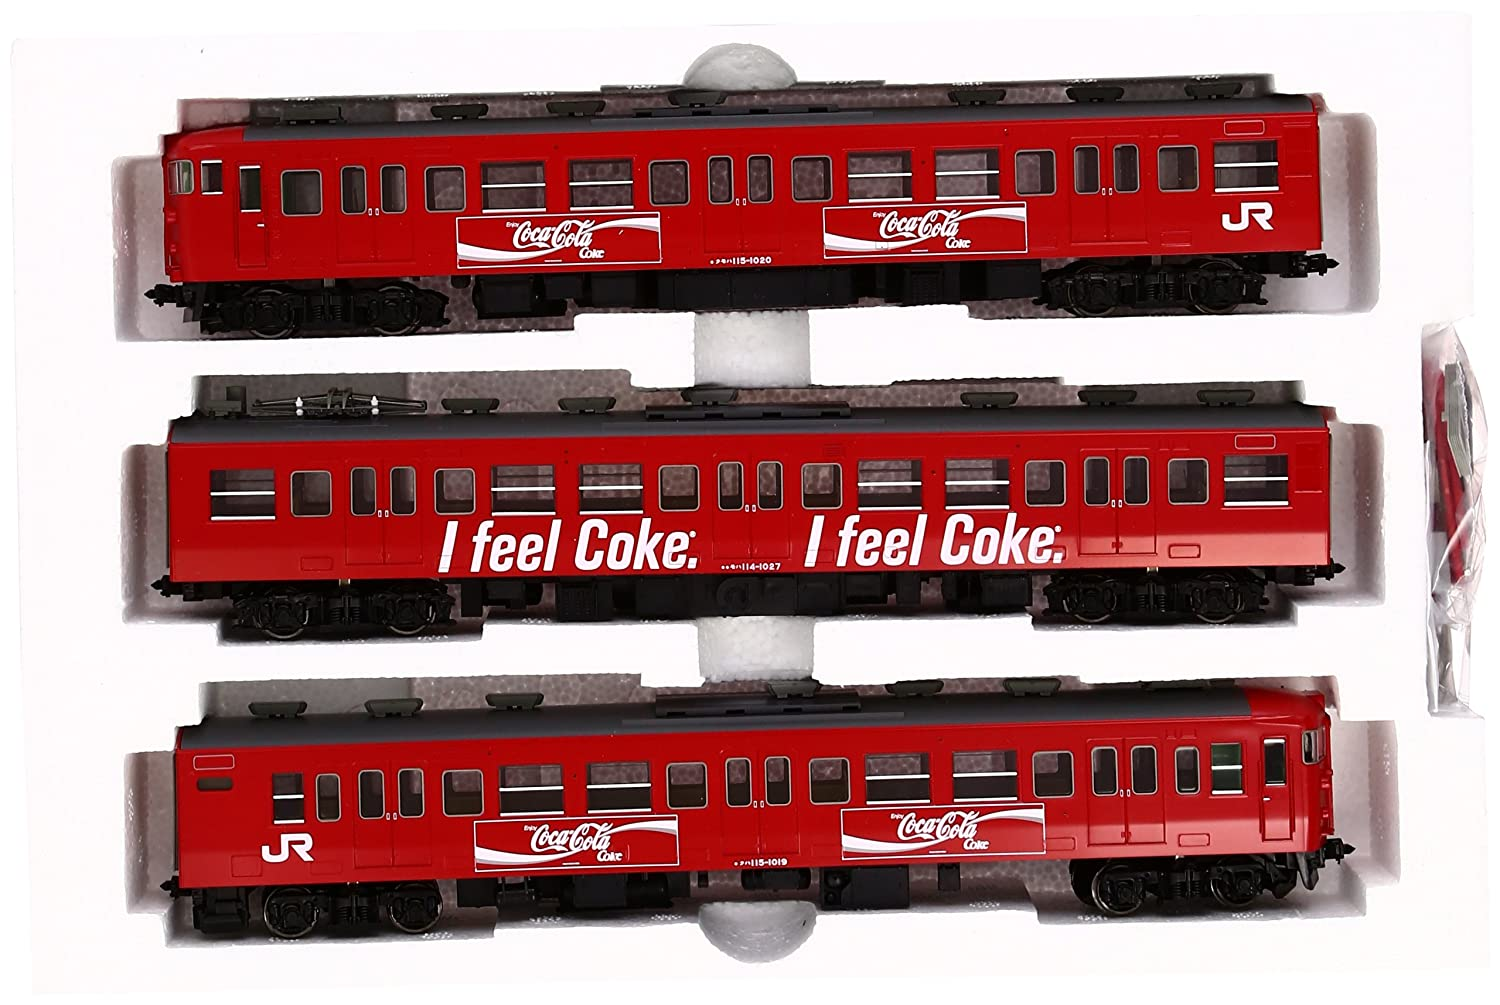 J.R. J.R. J.R. Suburban Train Series 115-1000 (Coca Cola Colour) (3-Car Set) (Model Train) (japan import) 9ceaa4